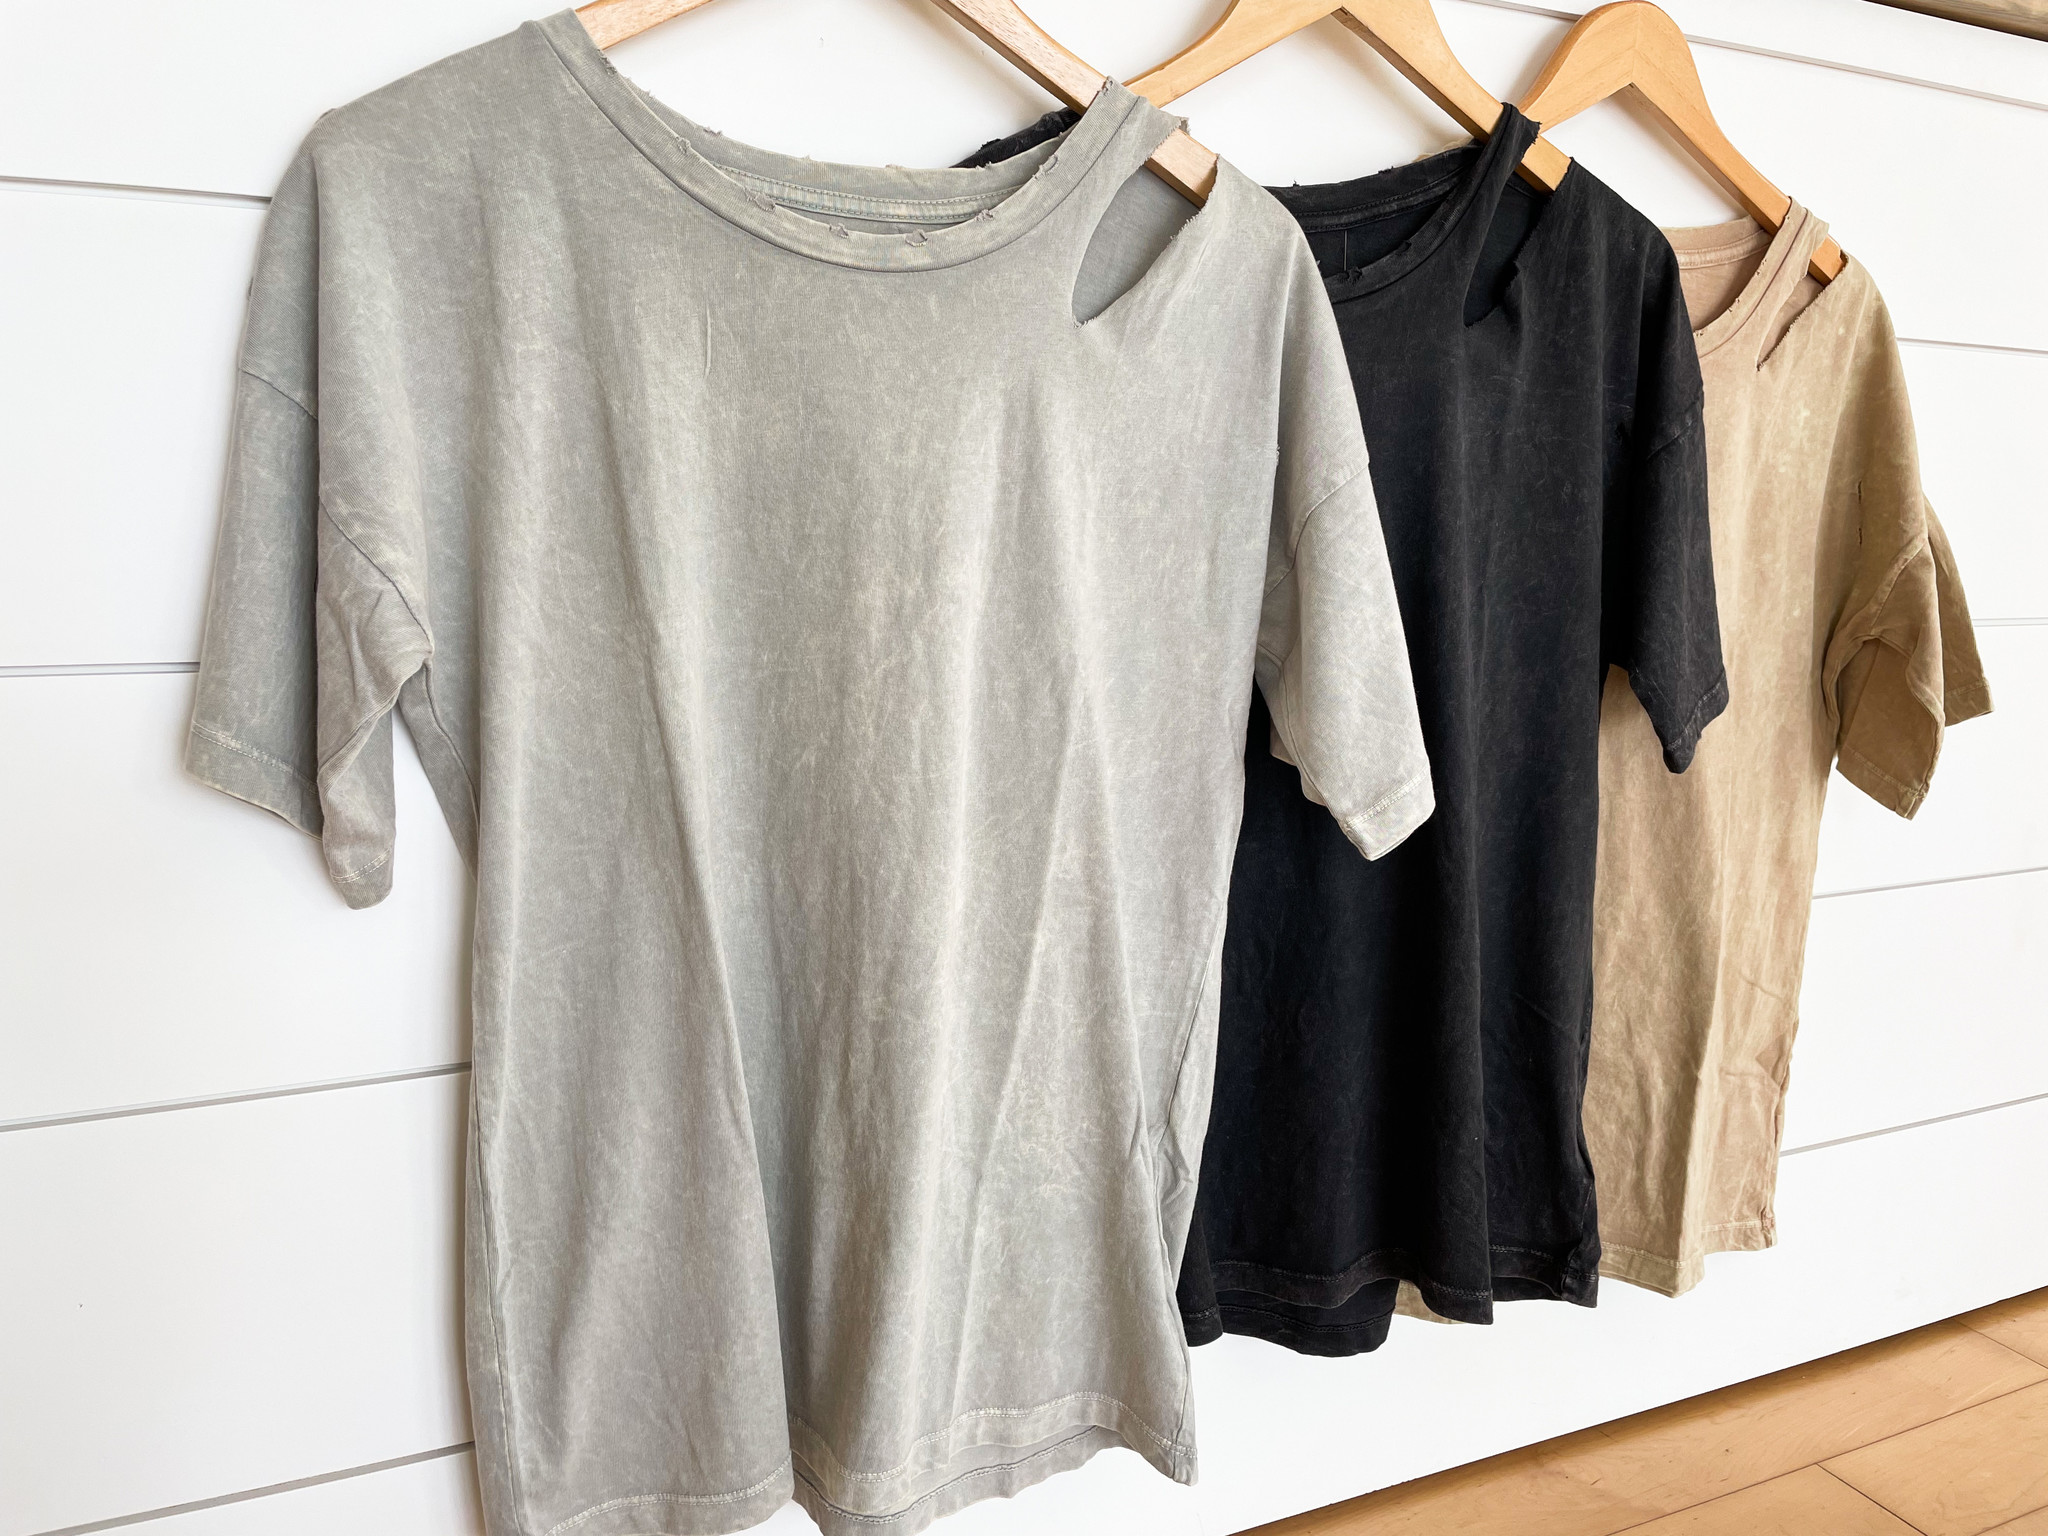 Mineral Washed Distressed Detail T-Shirt